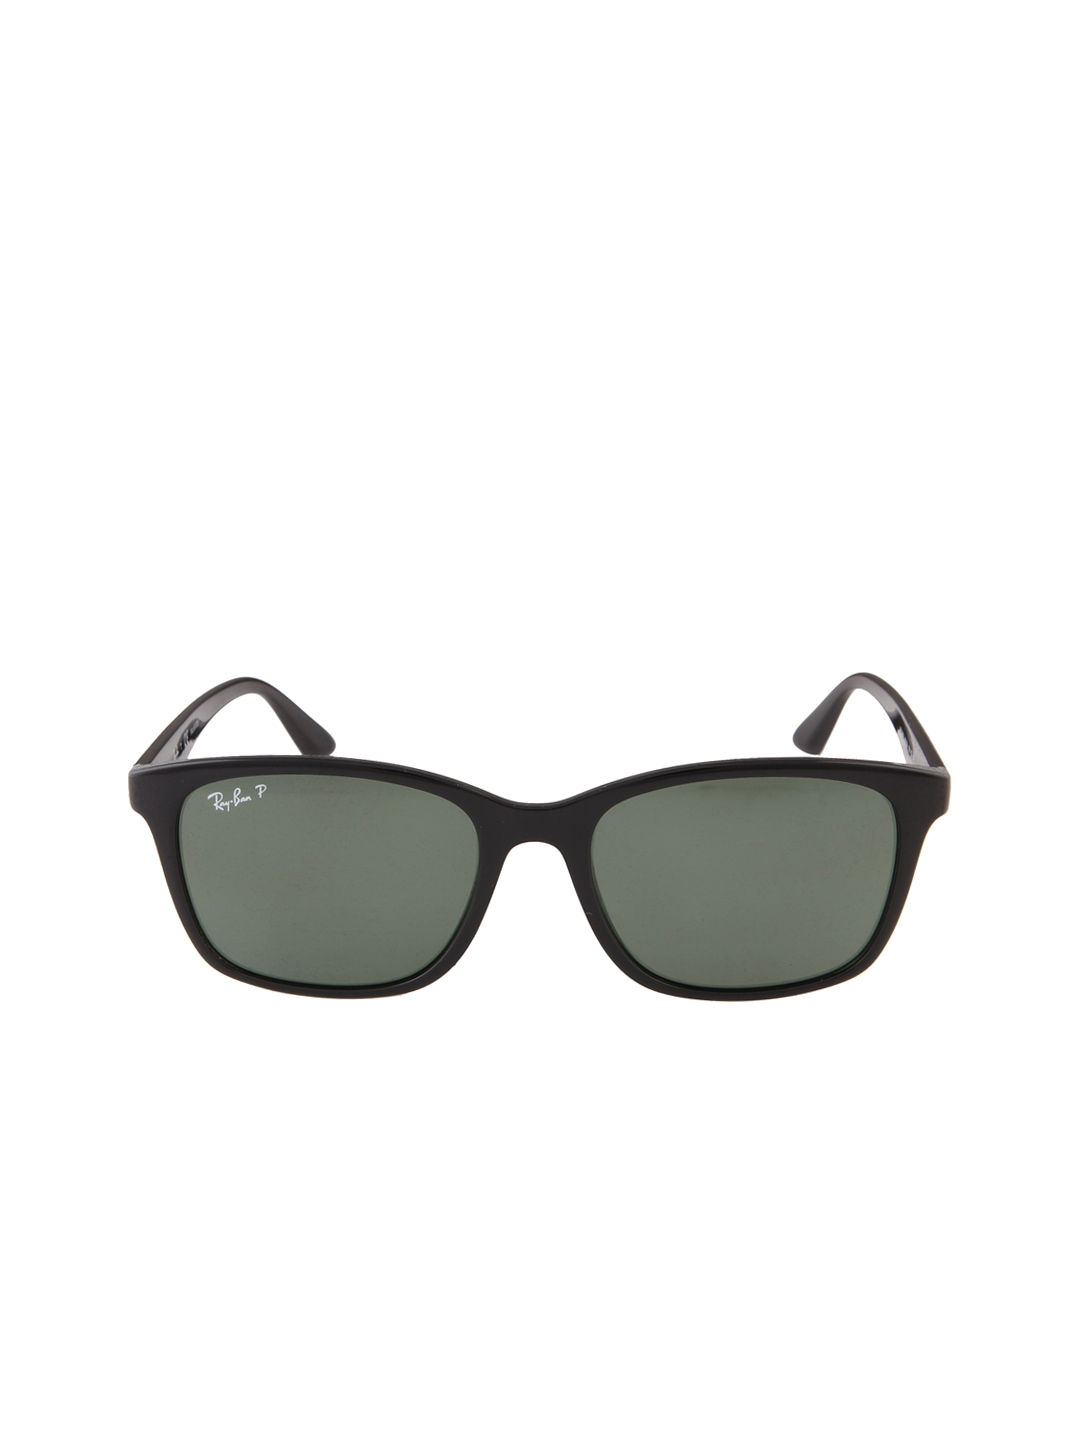 Are All Ray Bans Unisex